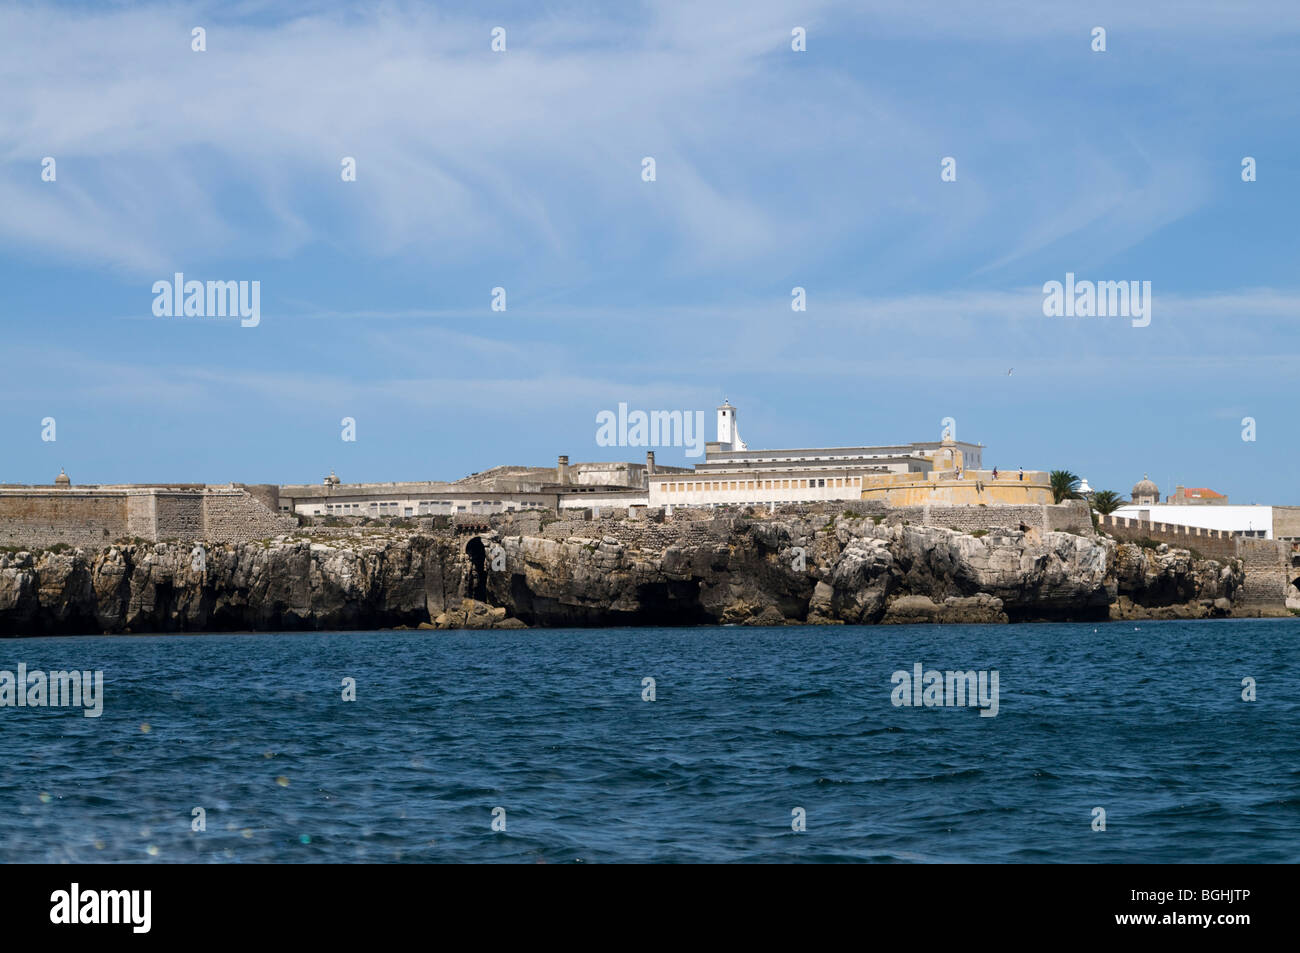 view of Peniche fortress from the sea - Stock Image